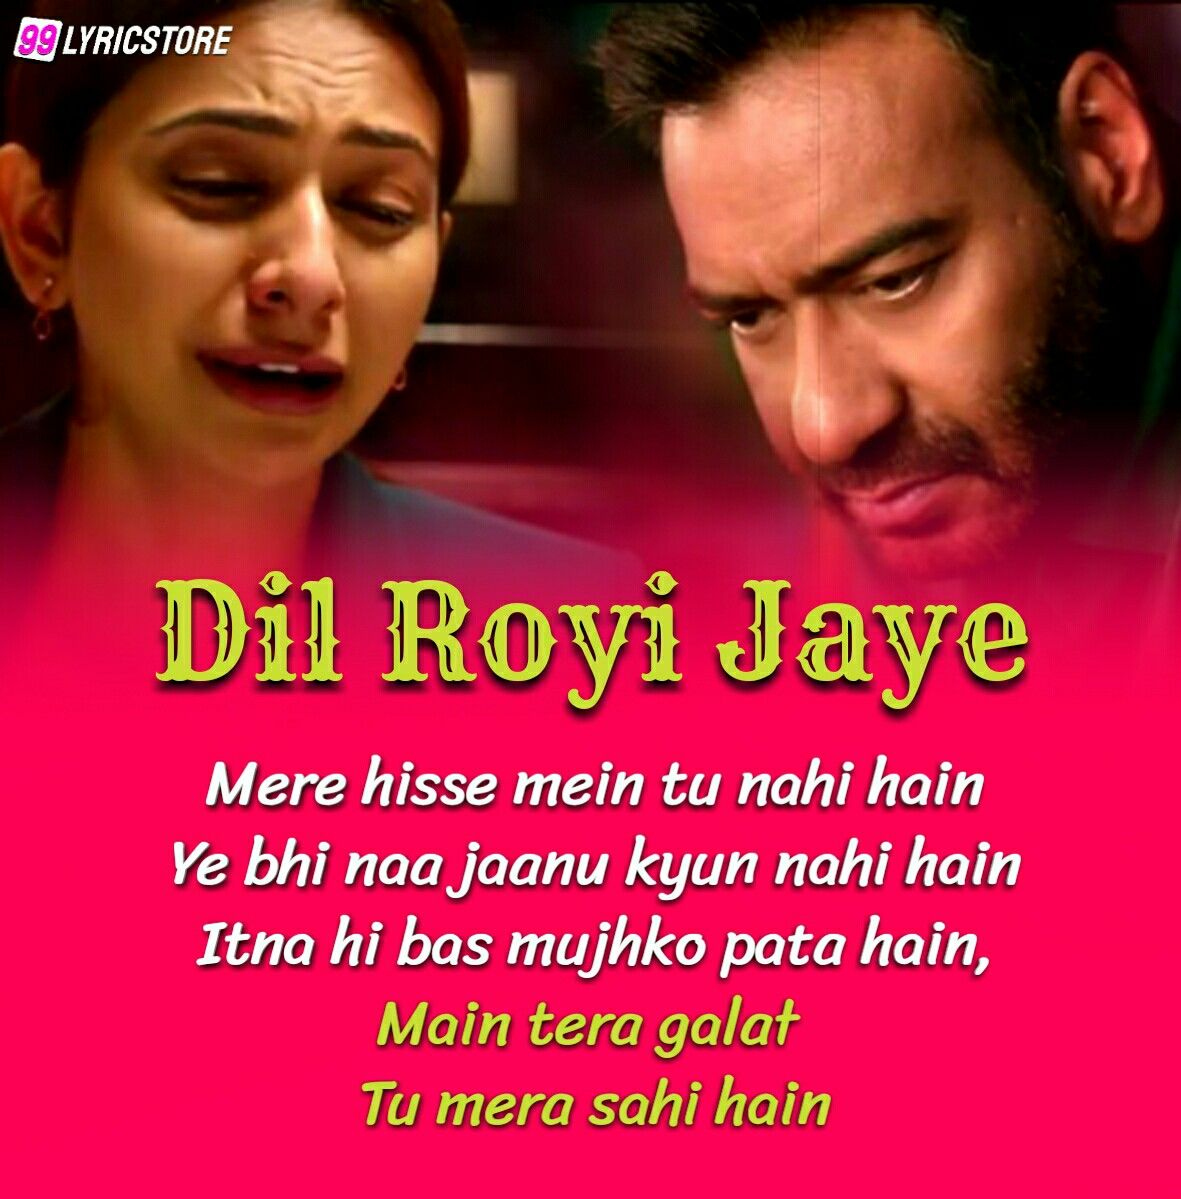 Dil Royi Jaye sad Hindi Song Sung by ARIJIT SINGH from movie De De Pyaar De